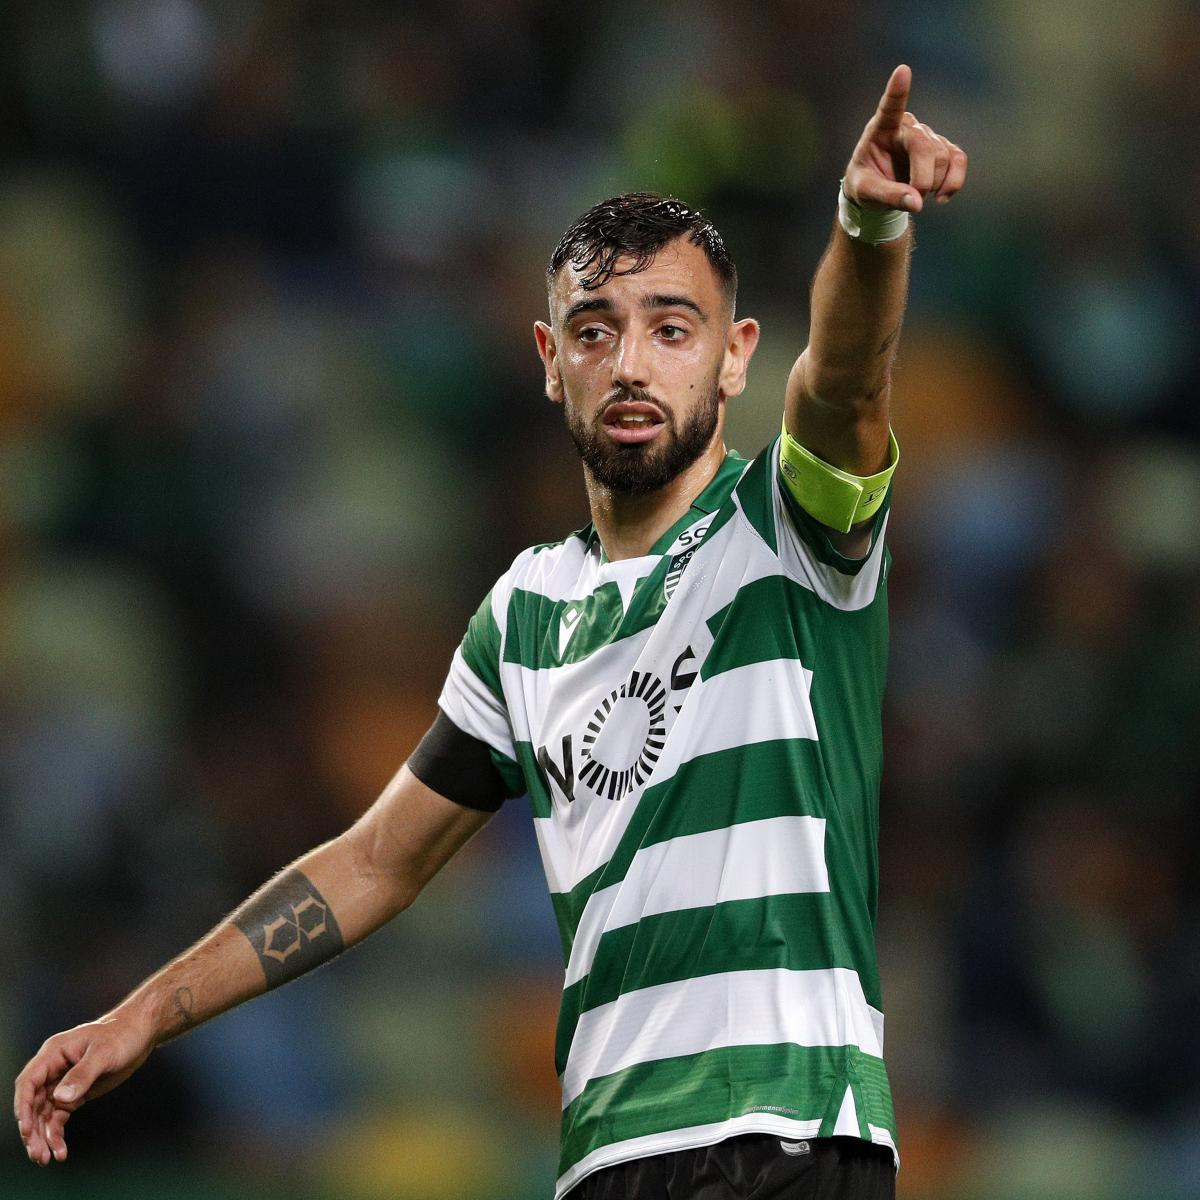 Bruno Fernandes 'Always' Preferred EPL; Manchester United Medical Reportedly Set | Bleacher Report | Latest News, Videos and Highlights